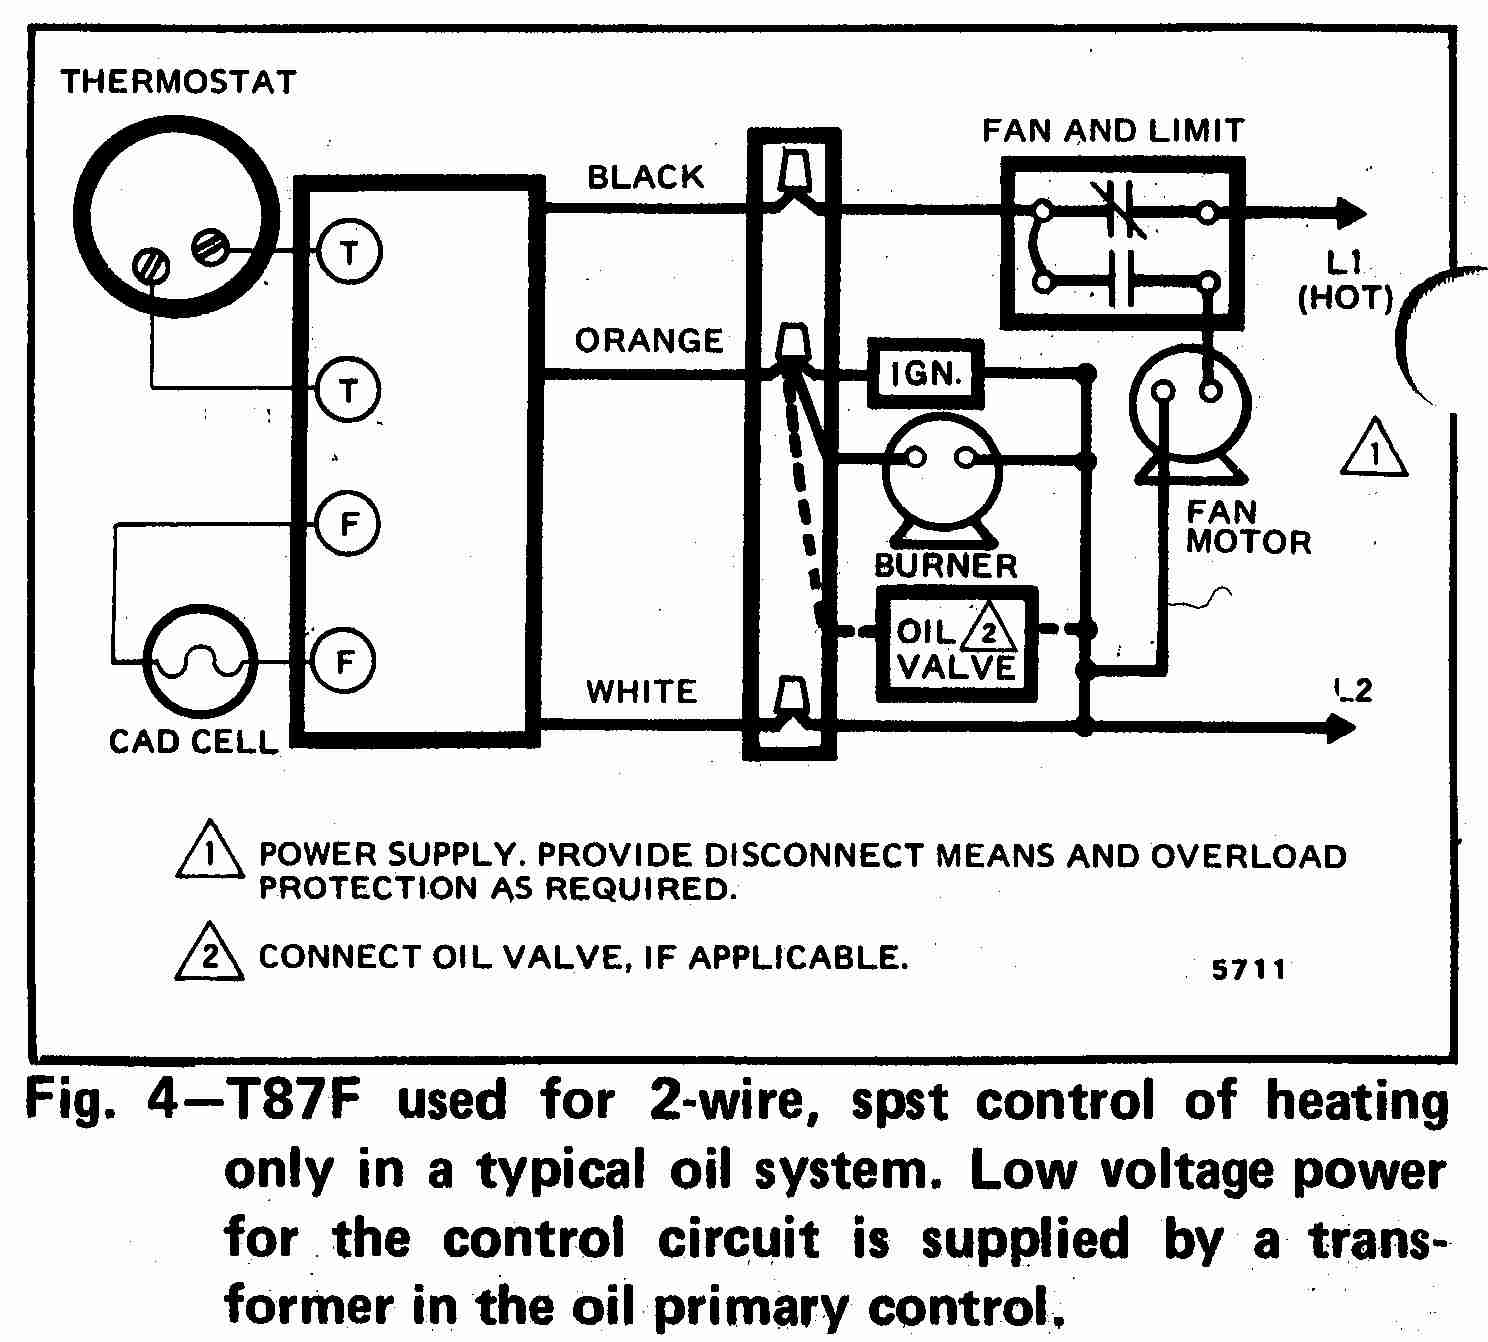 Typical Unit Heater Wiring Diagram With Aquastat Relay Schematic Room Thermostat Diagrams For Hvac Systems Rh Inspectapedia Com Gas Fired Control